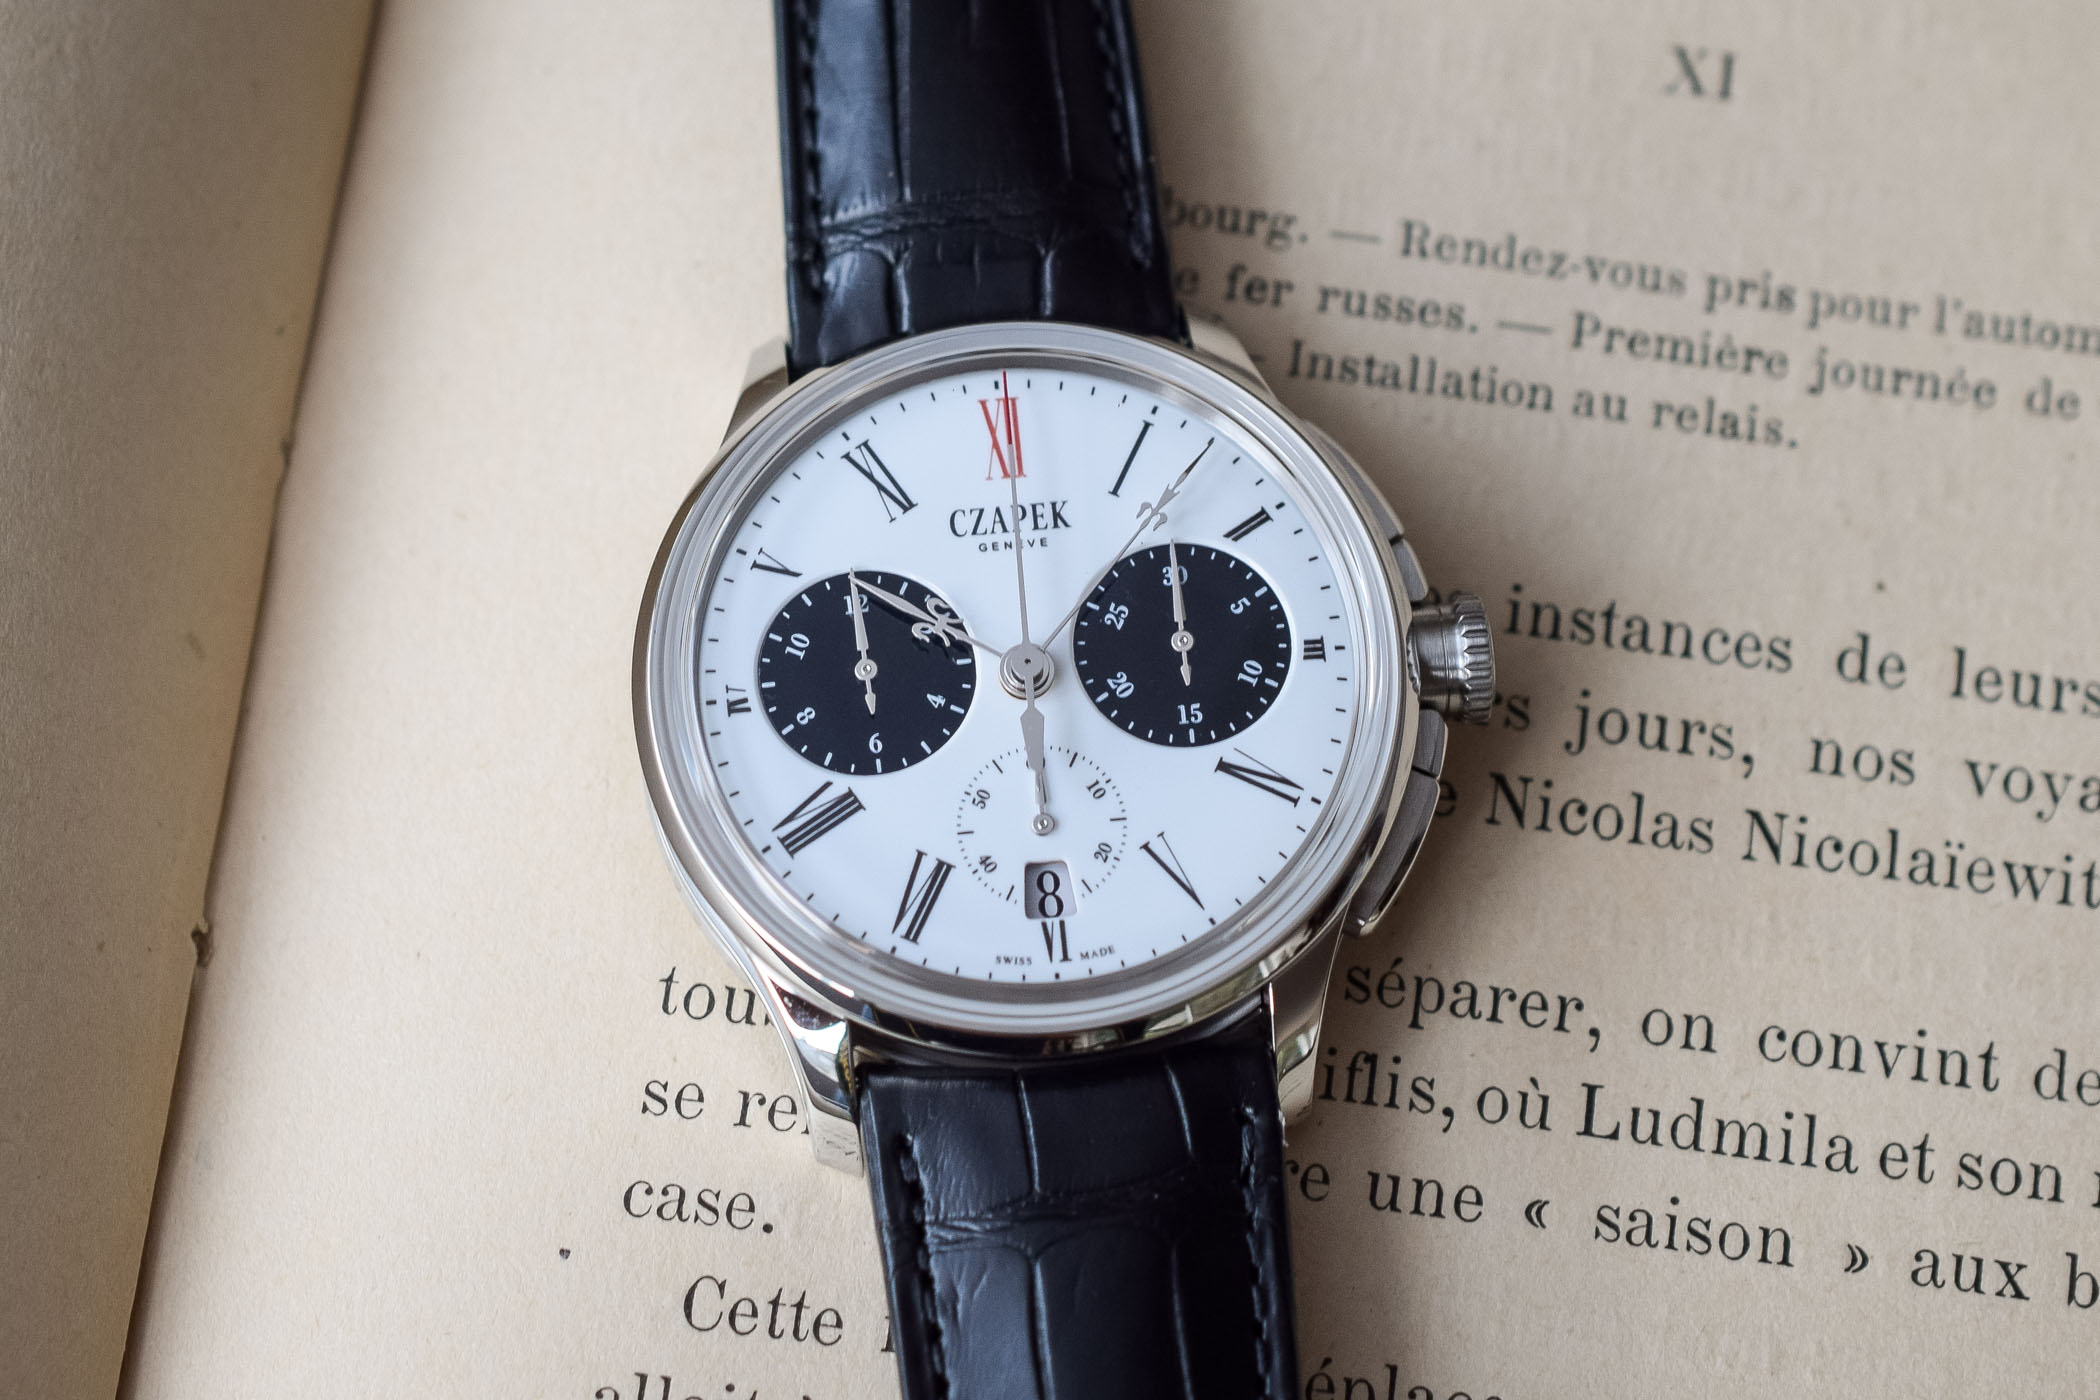 Baselworld 2019 - Czapek Faubourg de Cracovie Chronograph Tao With Panda Enamel Dial - 4